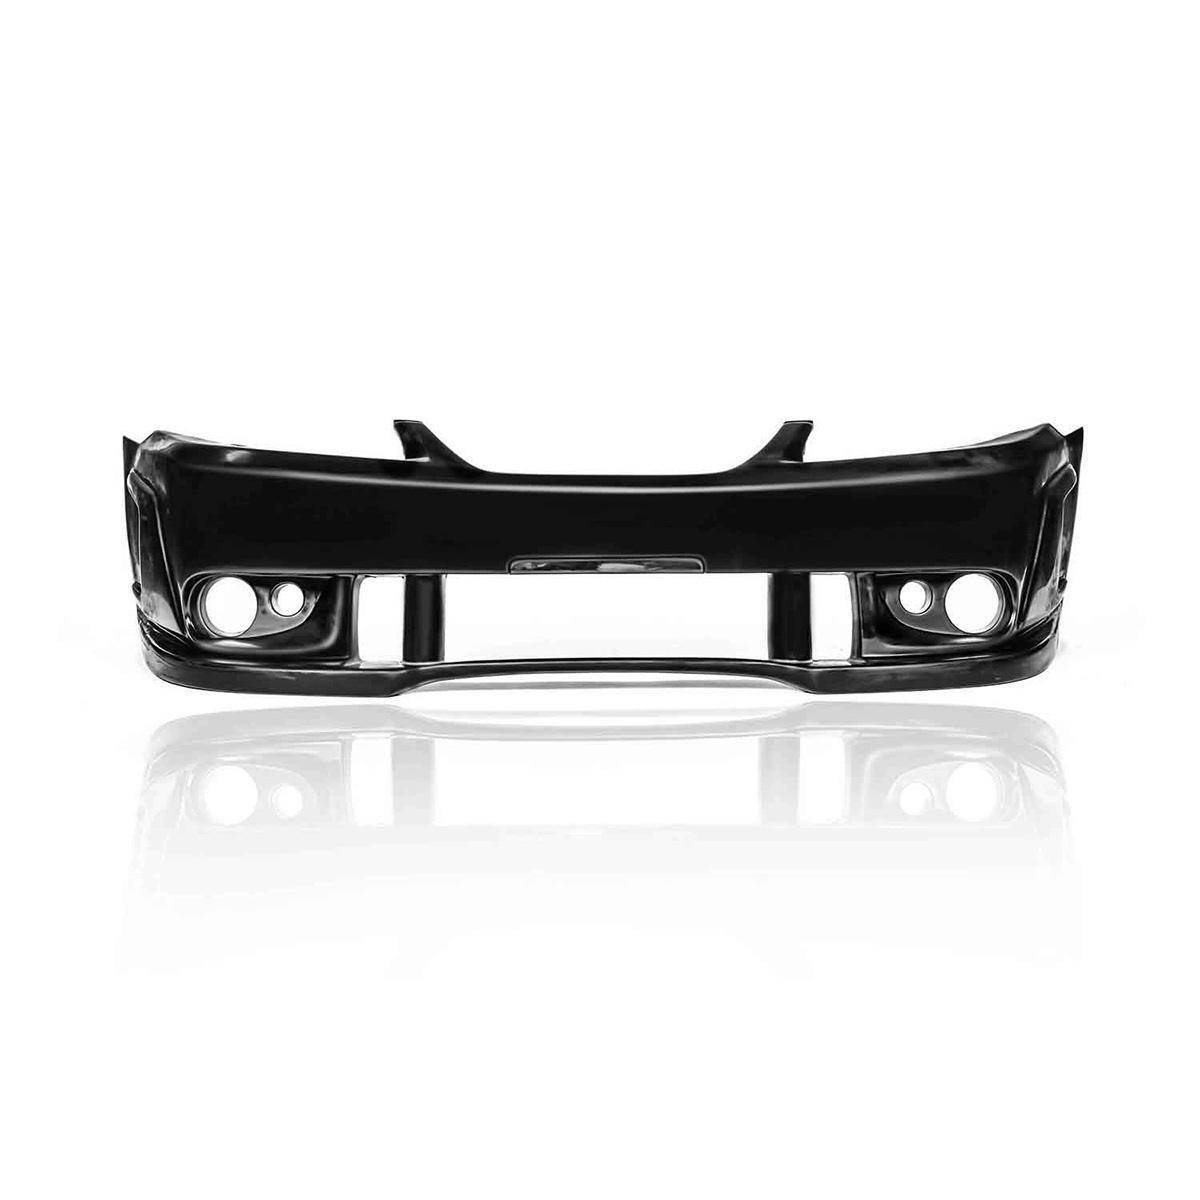 Ford Mustang 1994-1998 Spy 2 Style 1 Piece Polyurethane Front Bumper